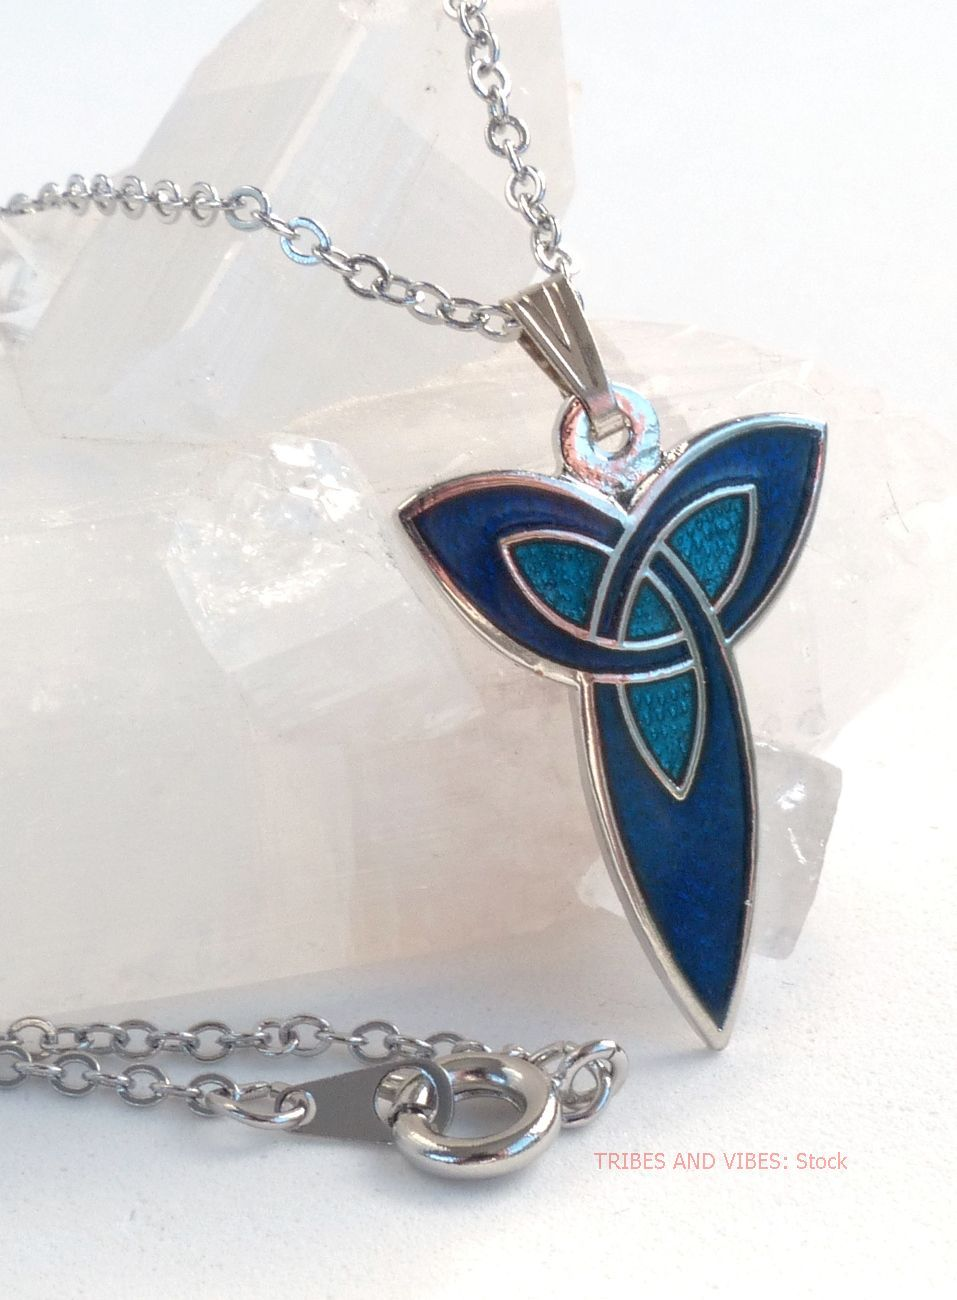 Blue Triquetra Trinity Knot Pendant Silver Plate Necklace by Sea Gems (stoc